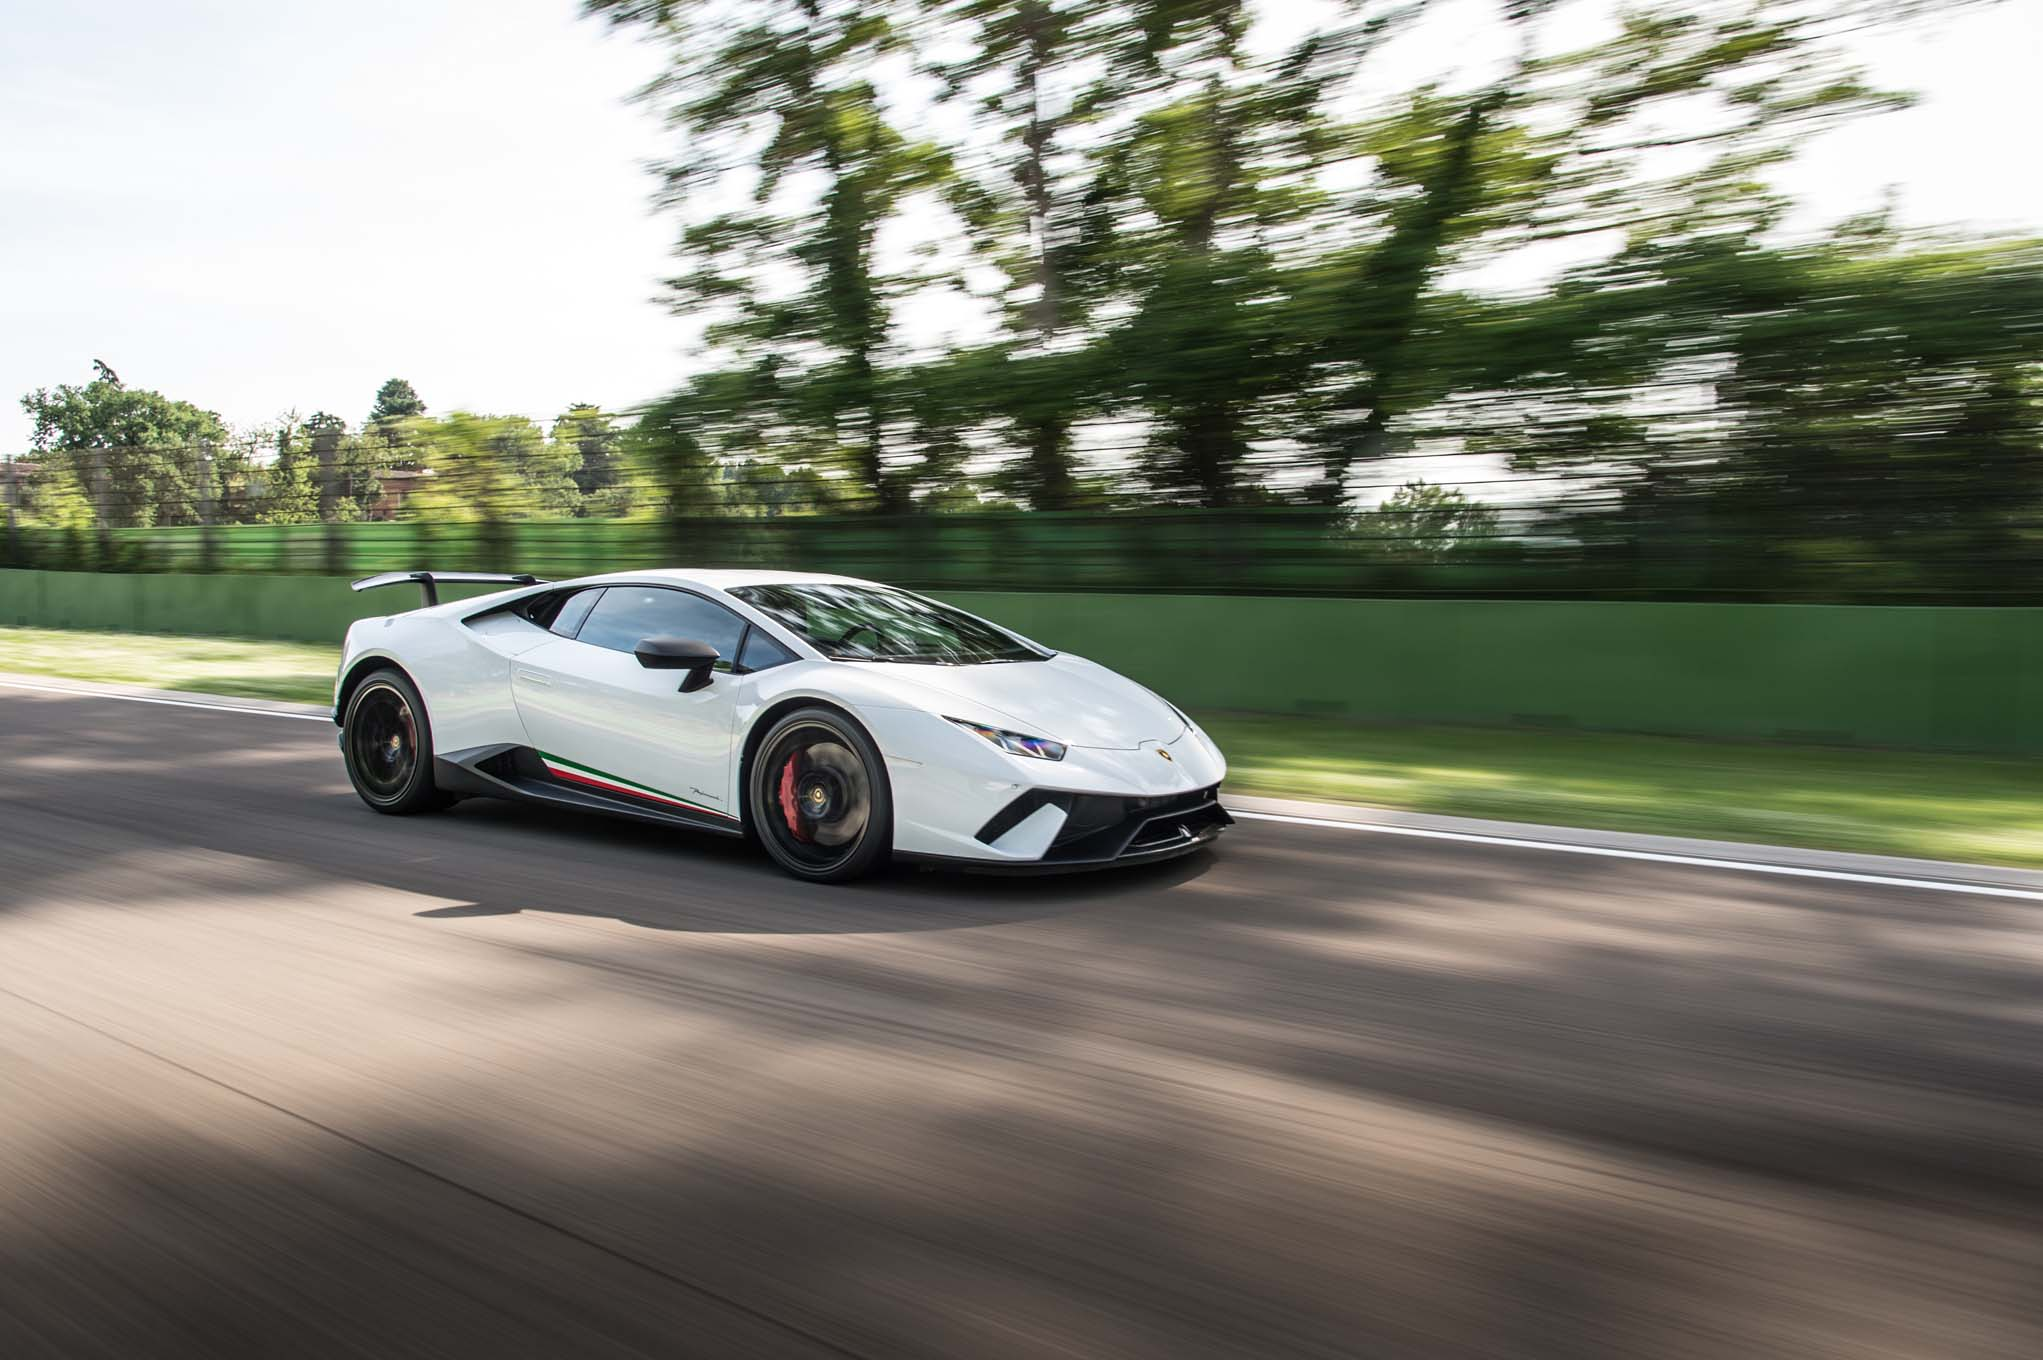 2018-Lamborghini-Huracan-Performante-front-three-quarter-in-motion-13 Stunning Lamborghini Huracan Price Real Racing 3 Cars Trend